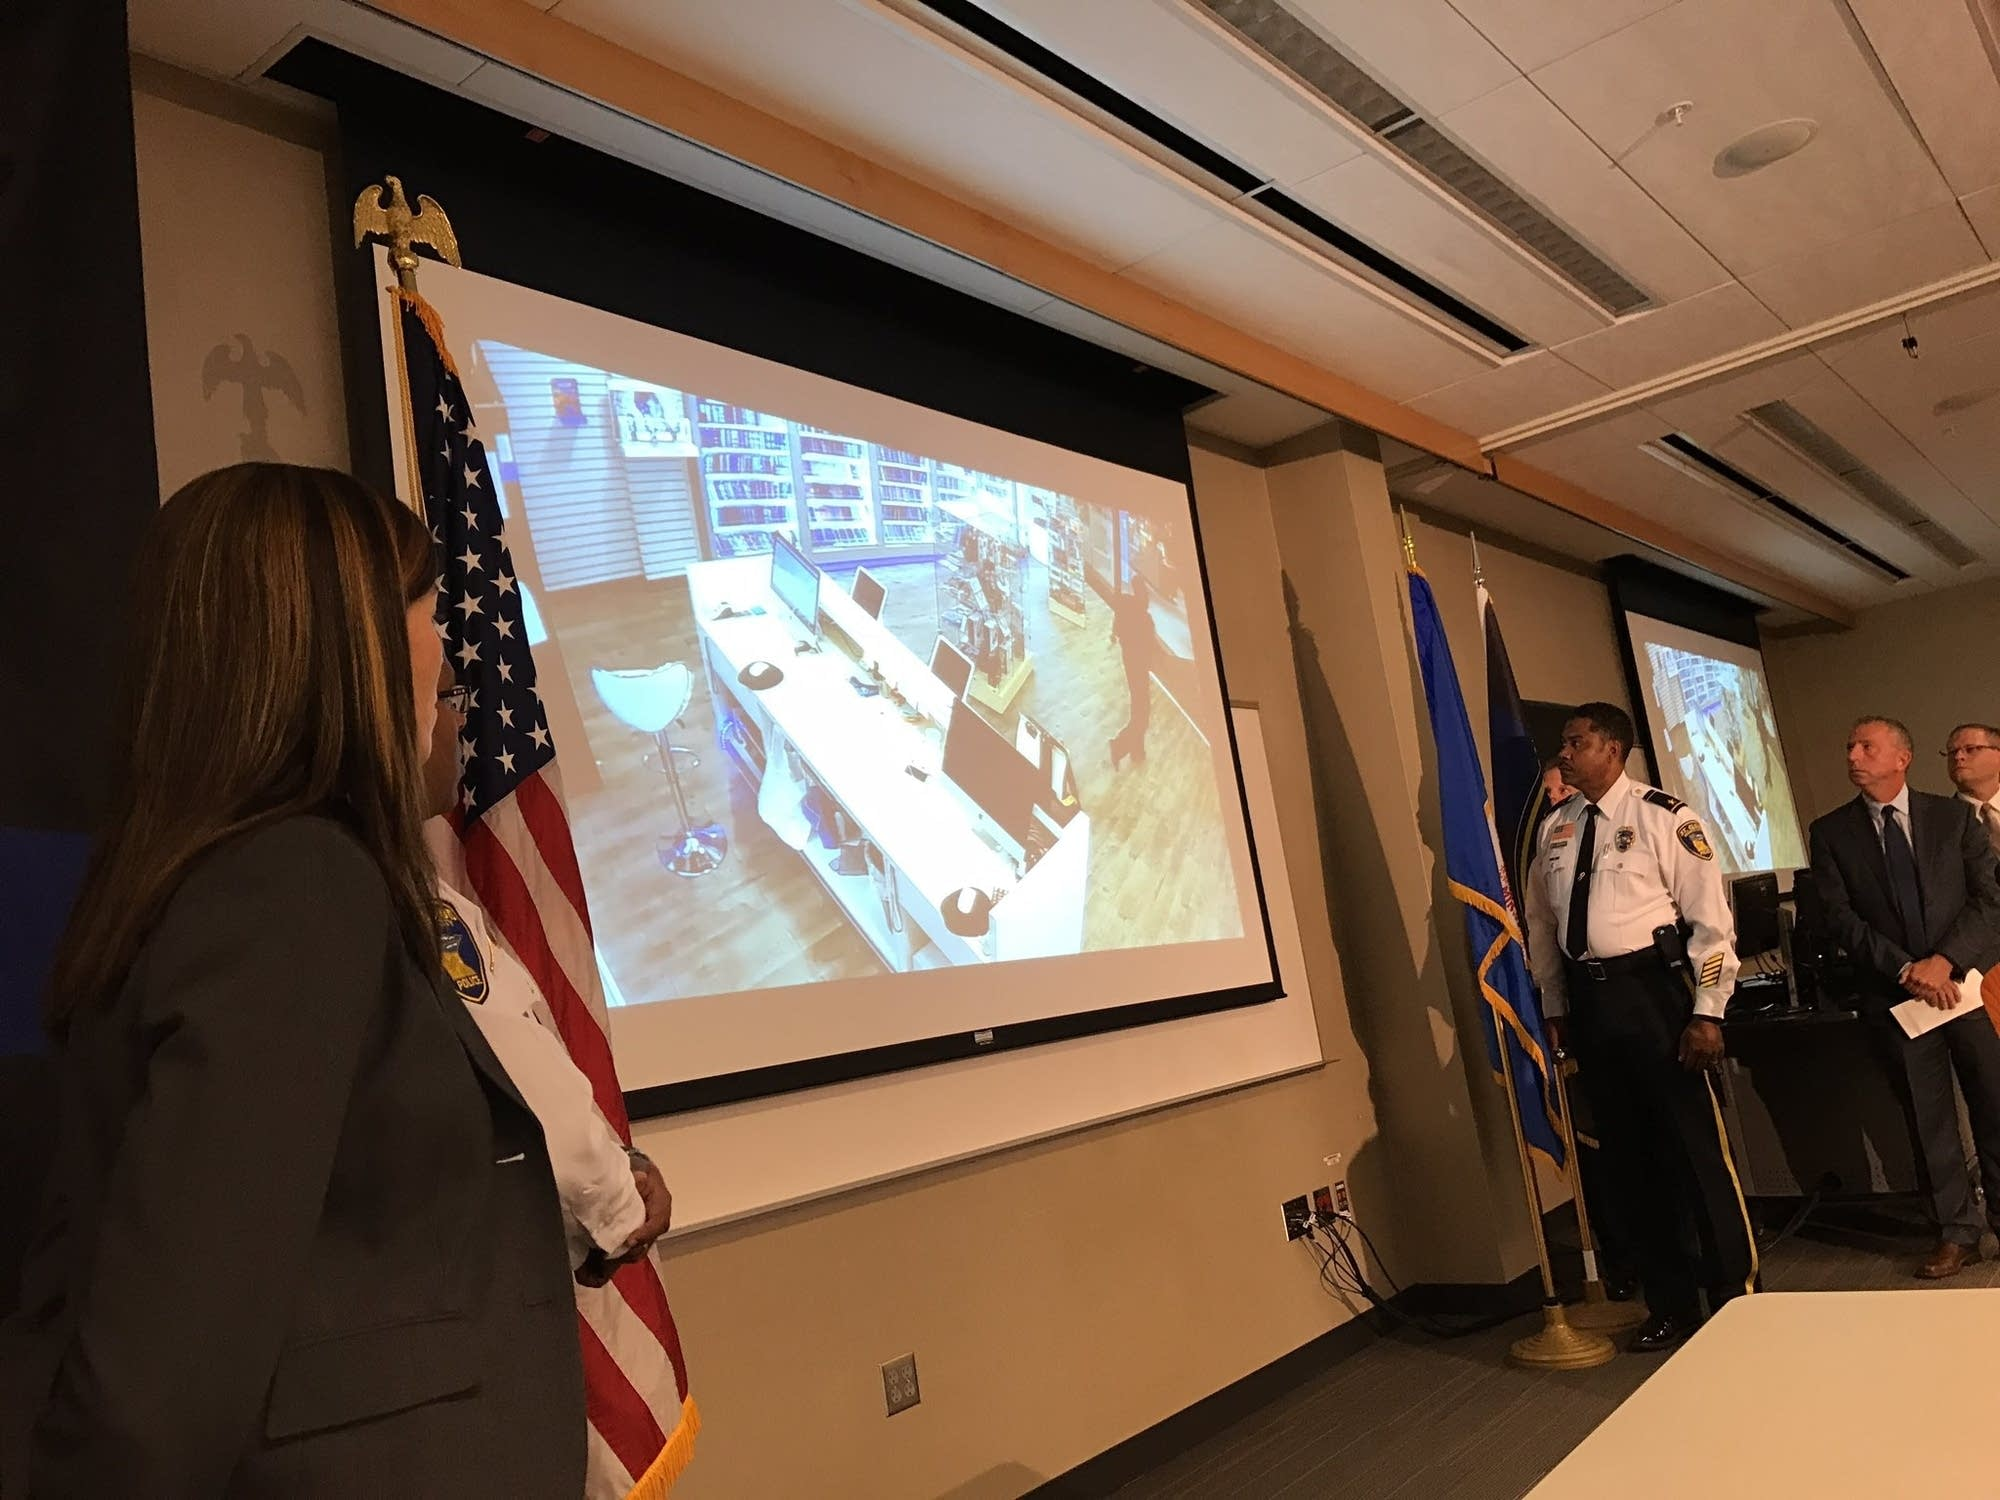 St. Cloud police chief Blair Anderson plays video